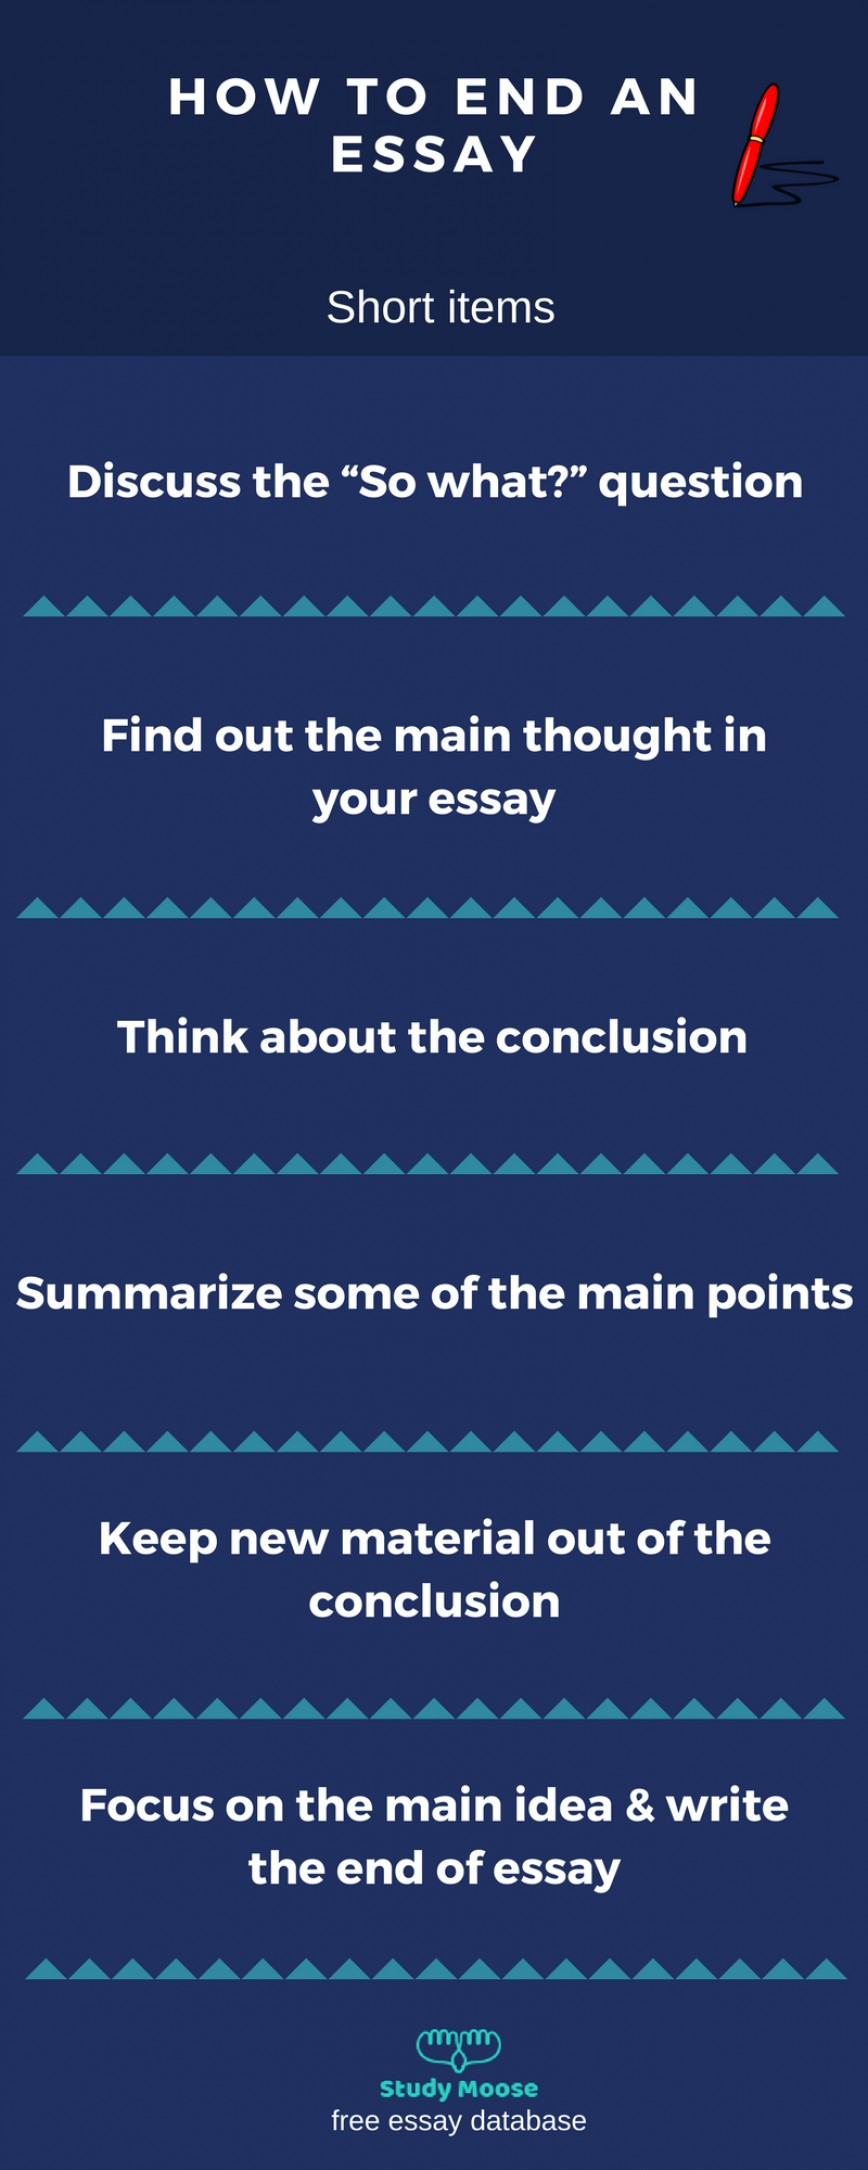 003 Essay Example Good Ways To End An Outstanding Best Way Argumentative How Opinion 868